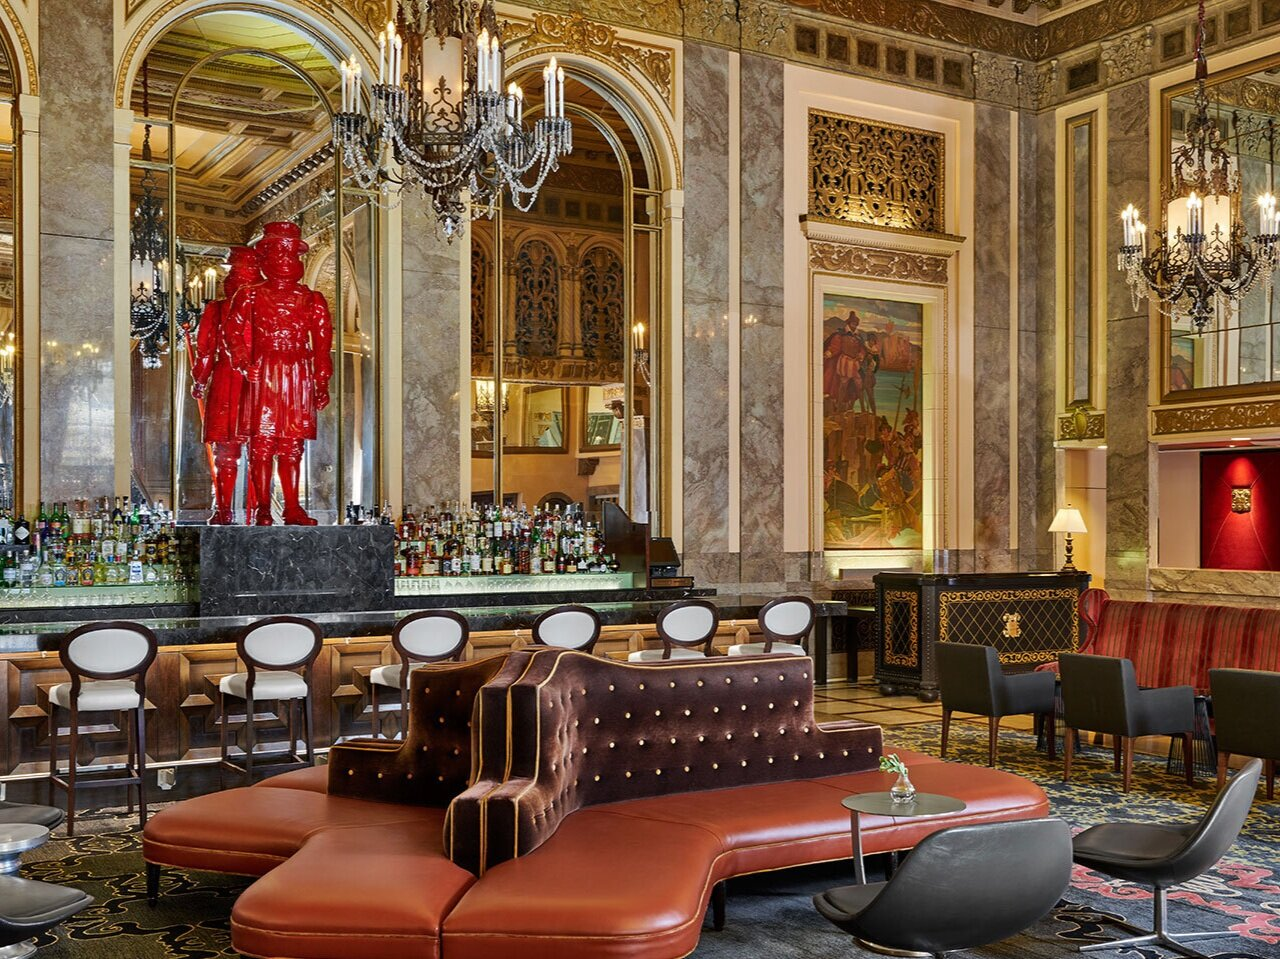 Sir Francis Drake Hotel - Dates of stay: February 23-26 (3 nights)Please only book this hotel if you are staying in San Francisco for 3 nights.Nightly Rate: $389 + tax/feesDistance from SFO to hotel: 15 milesDistance from hotel to Pier 27: 2 milesTo reserve a room (SPARK by Scout room block):1-800-795-7129 | CAReservations@kimptonhotels.comor CLICK HERE to book the Sir Francis Drake!